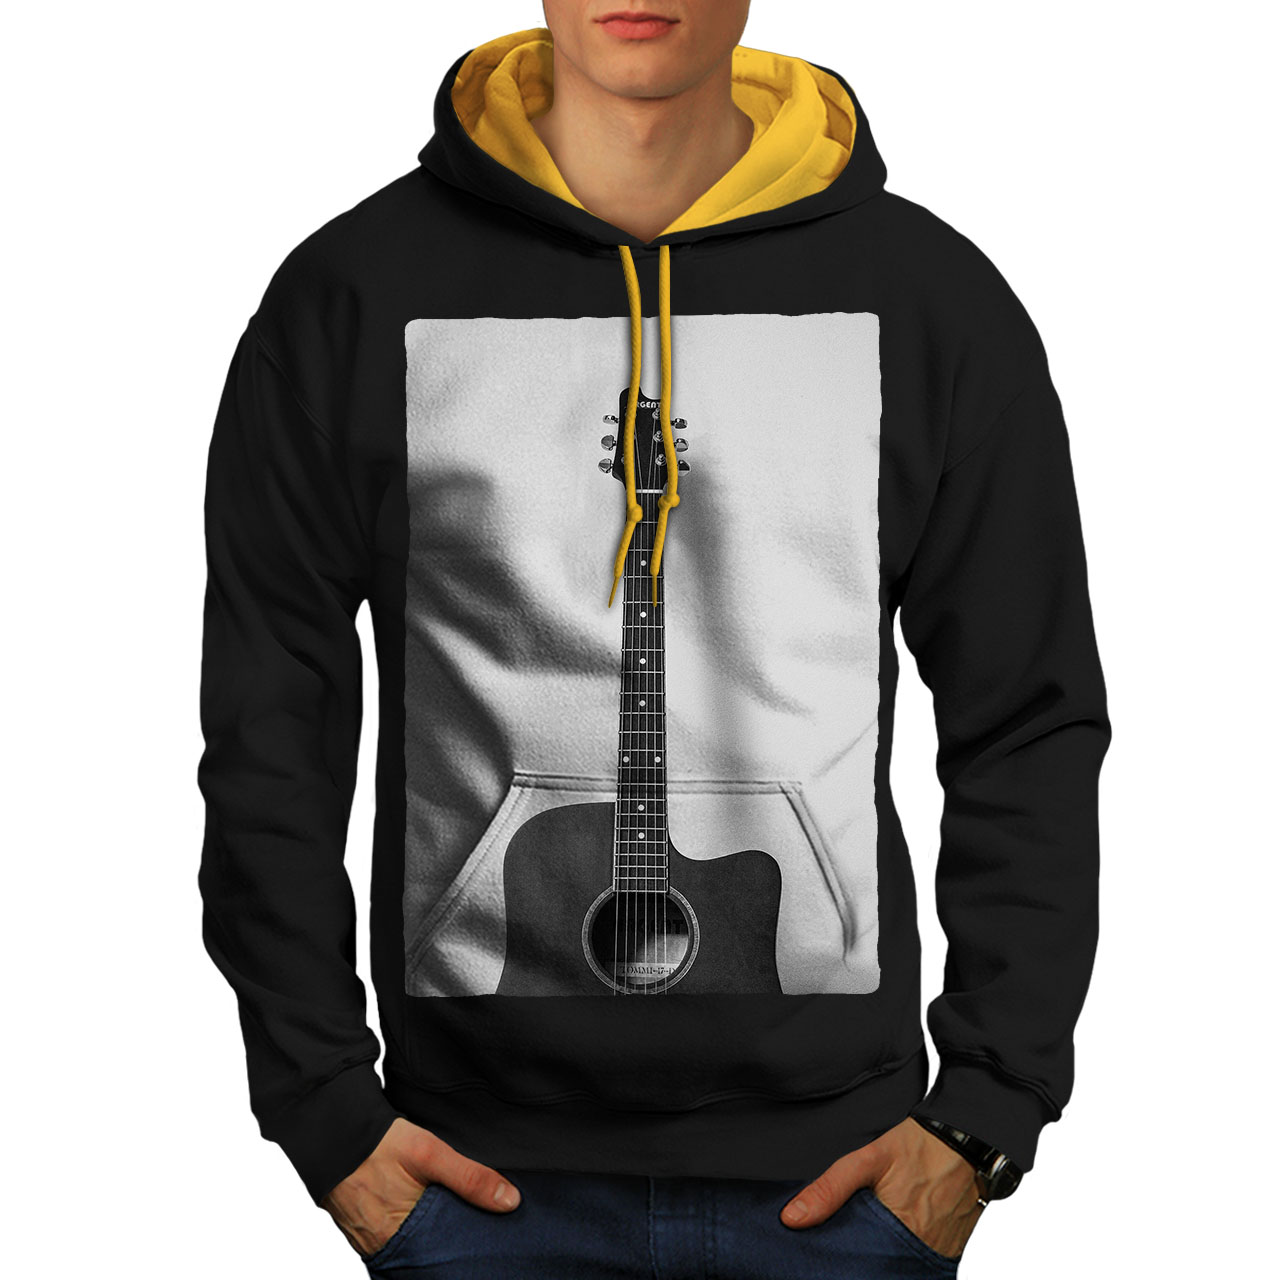 Casual Jumper wellcoda Space Music Mens Sweatshirt